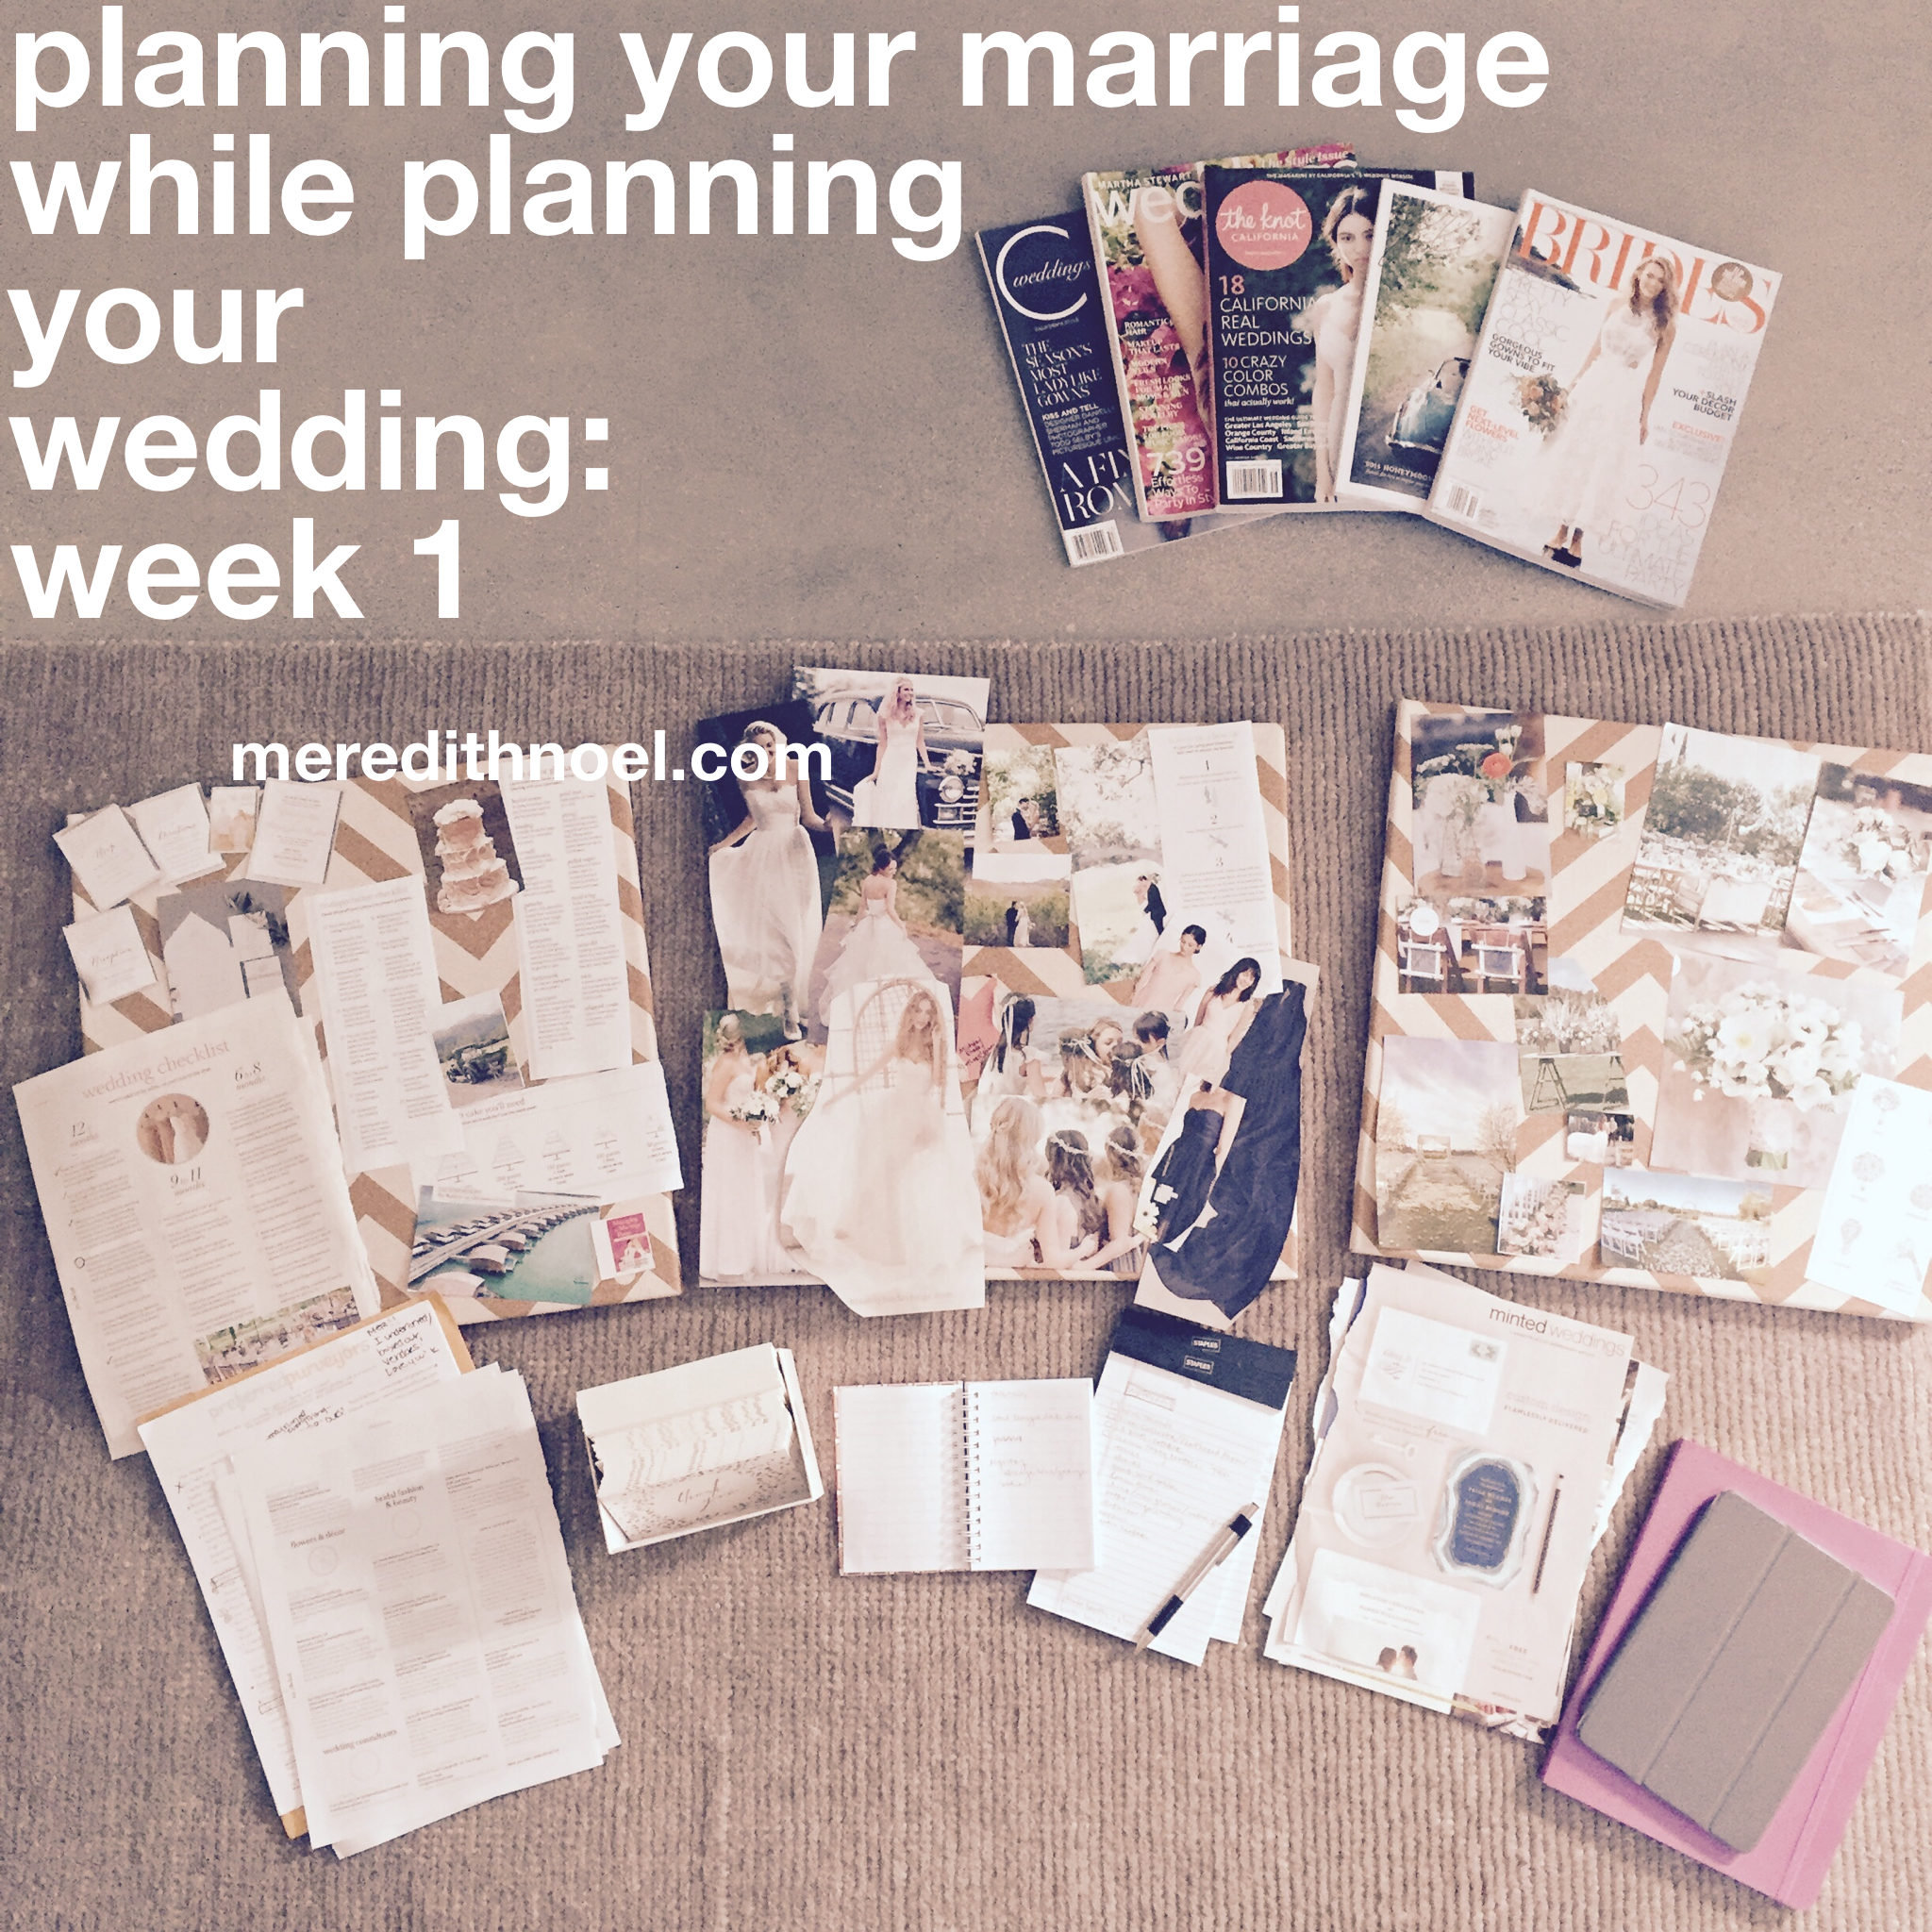 2015.11.5 planning your marriage week 1